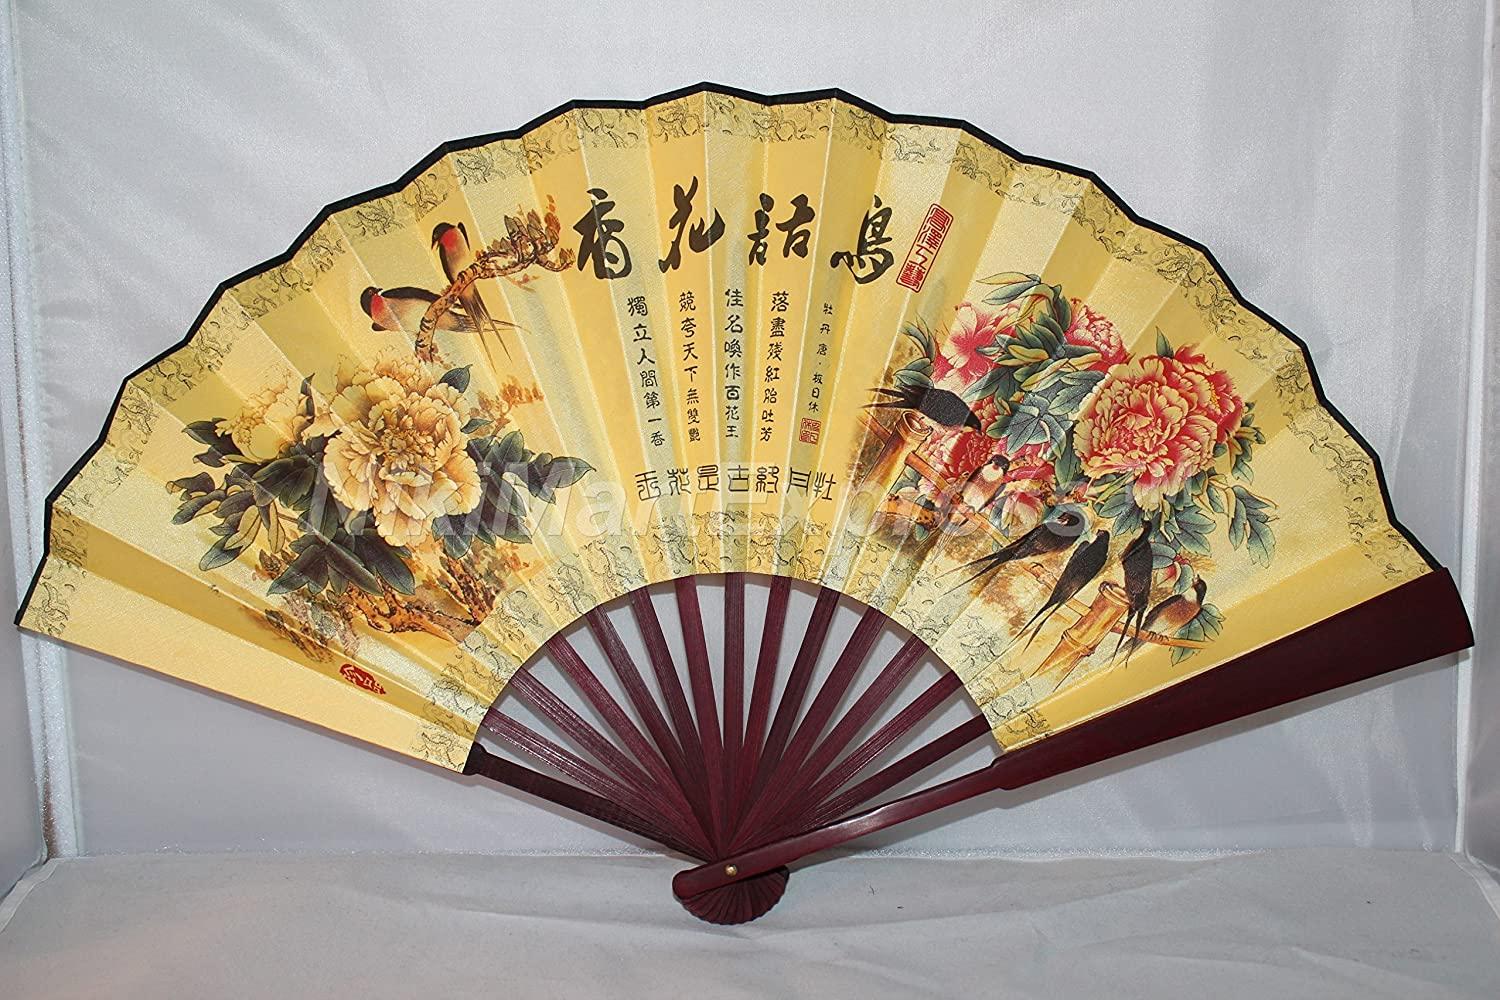 Amazon.com: Large Beautiful Chinese Bamboo & Silk Hand Folding Fan ...